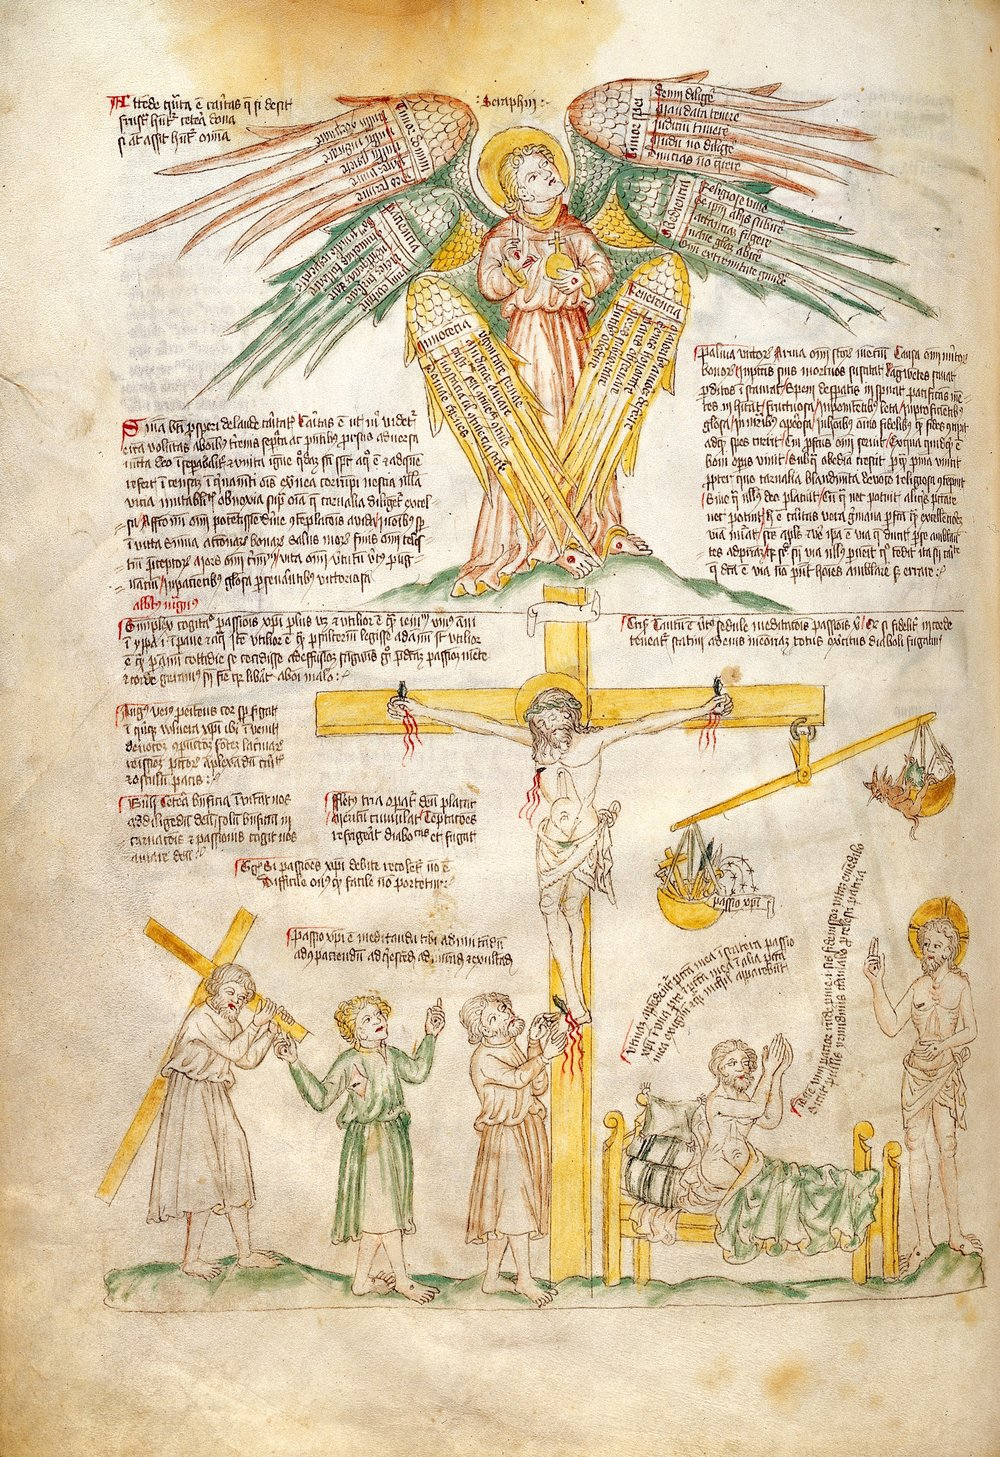 This illuminated manuscript depicts a six-winged seraphim above the crucifixion of Christ